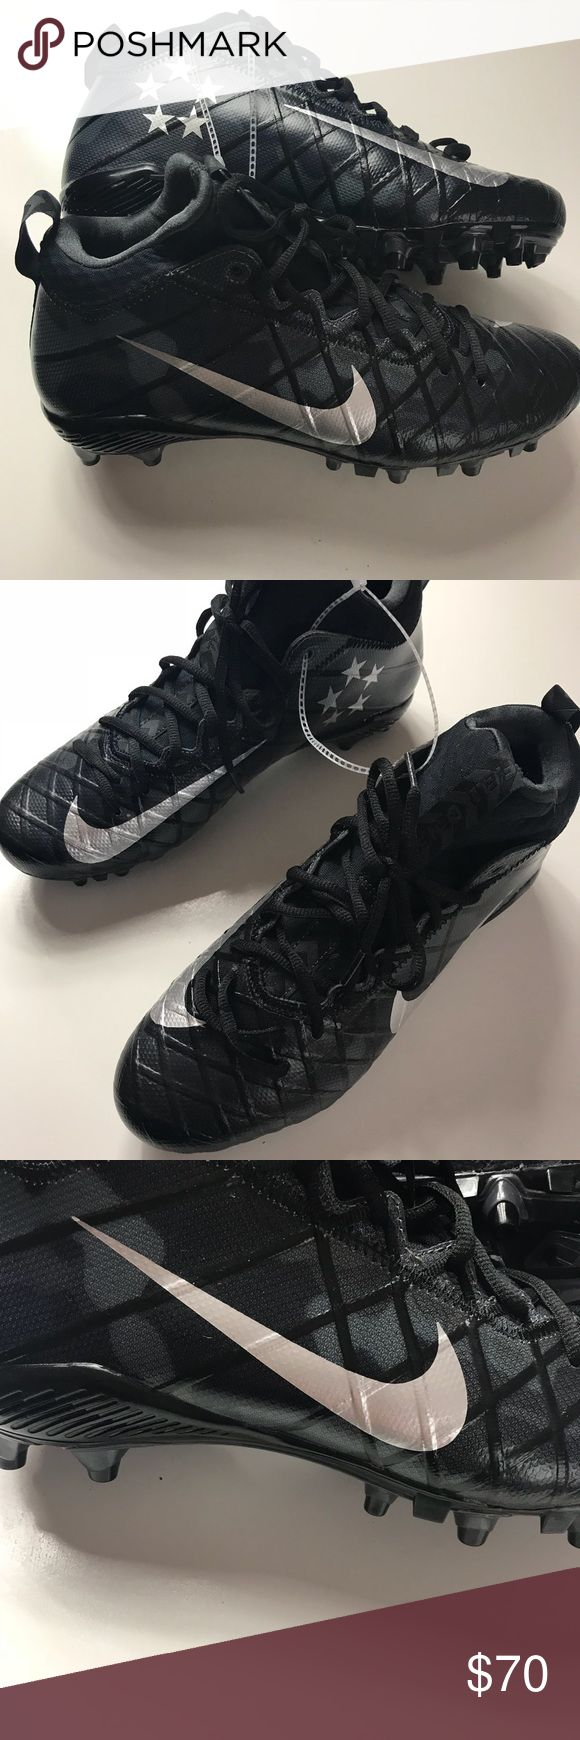 Nike Field General Cleats Brand new without box. Black and Gray Camouflage Field General Cleats. Nike Shoes Athletic Shoes